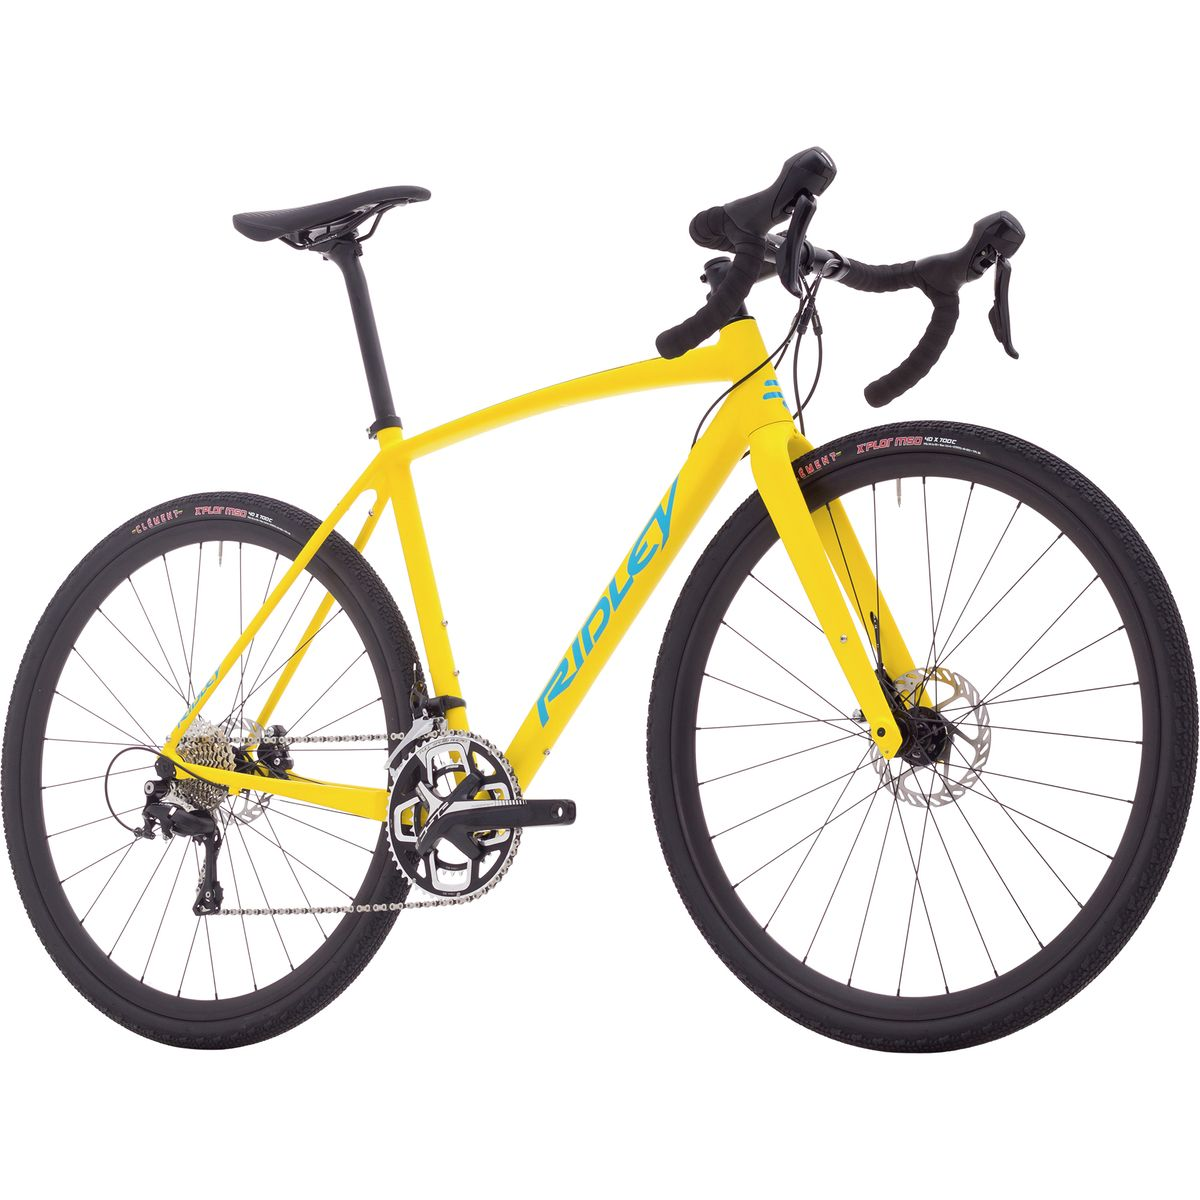 Ridley X Trail Alloy 105 Complete Bike 2018 Competitive Cyclist